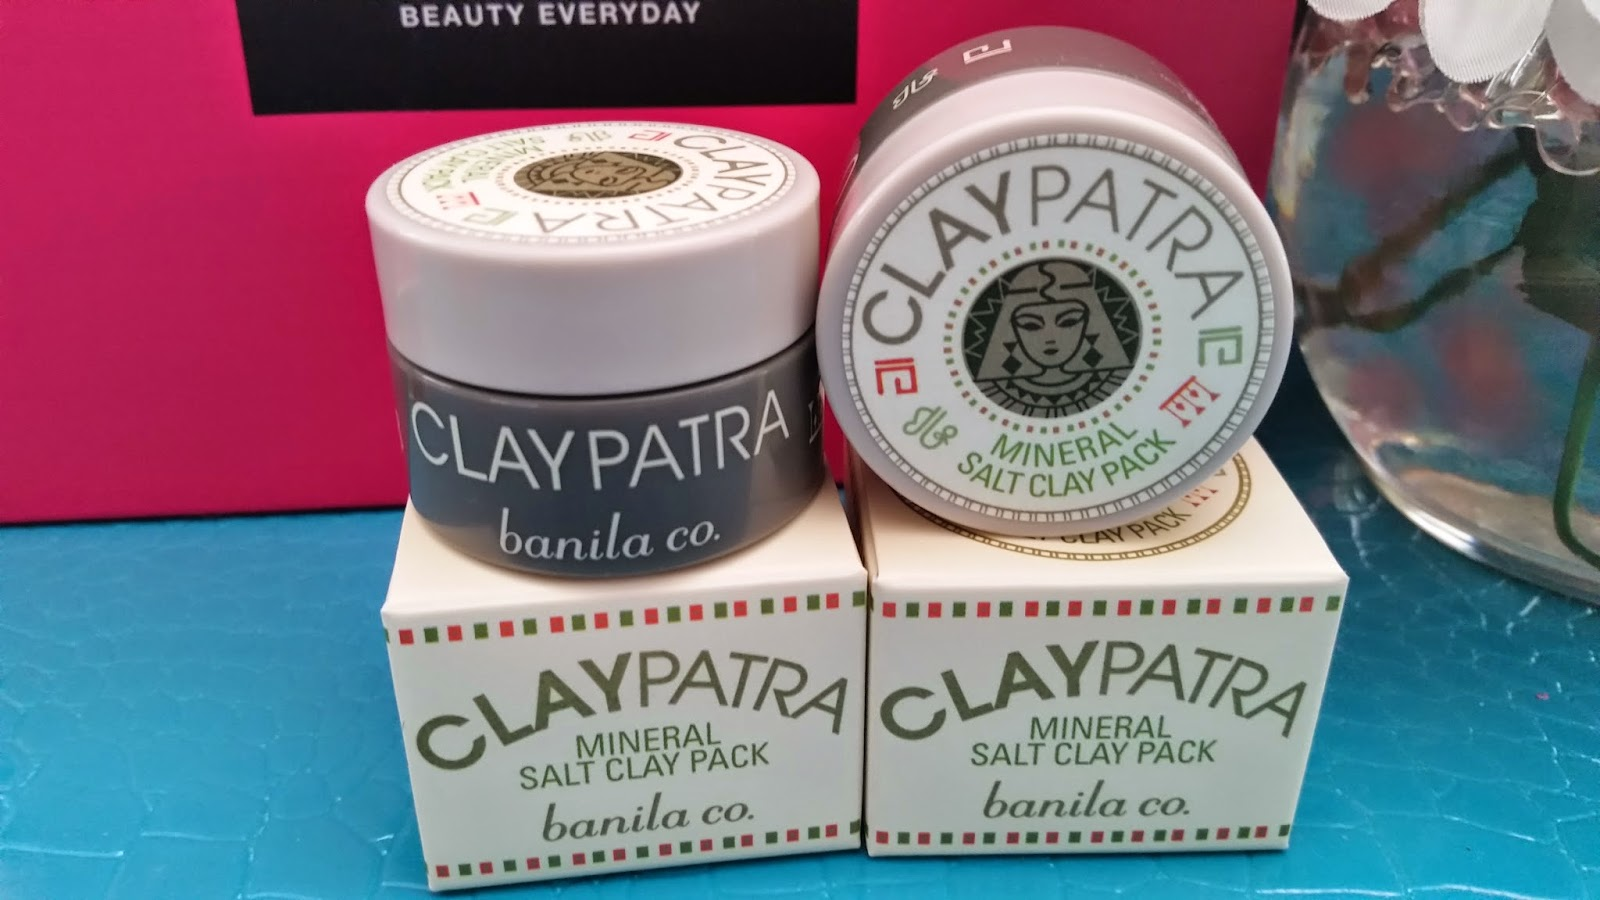 Banila Co. Claypatra Mineral Salt Clay Pack